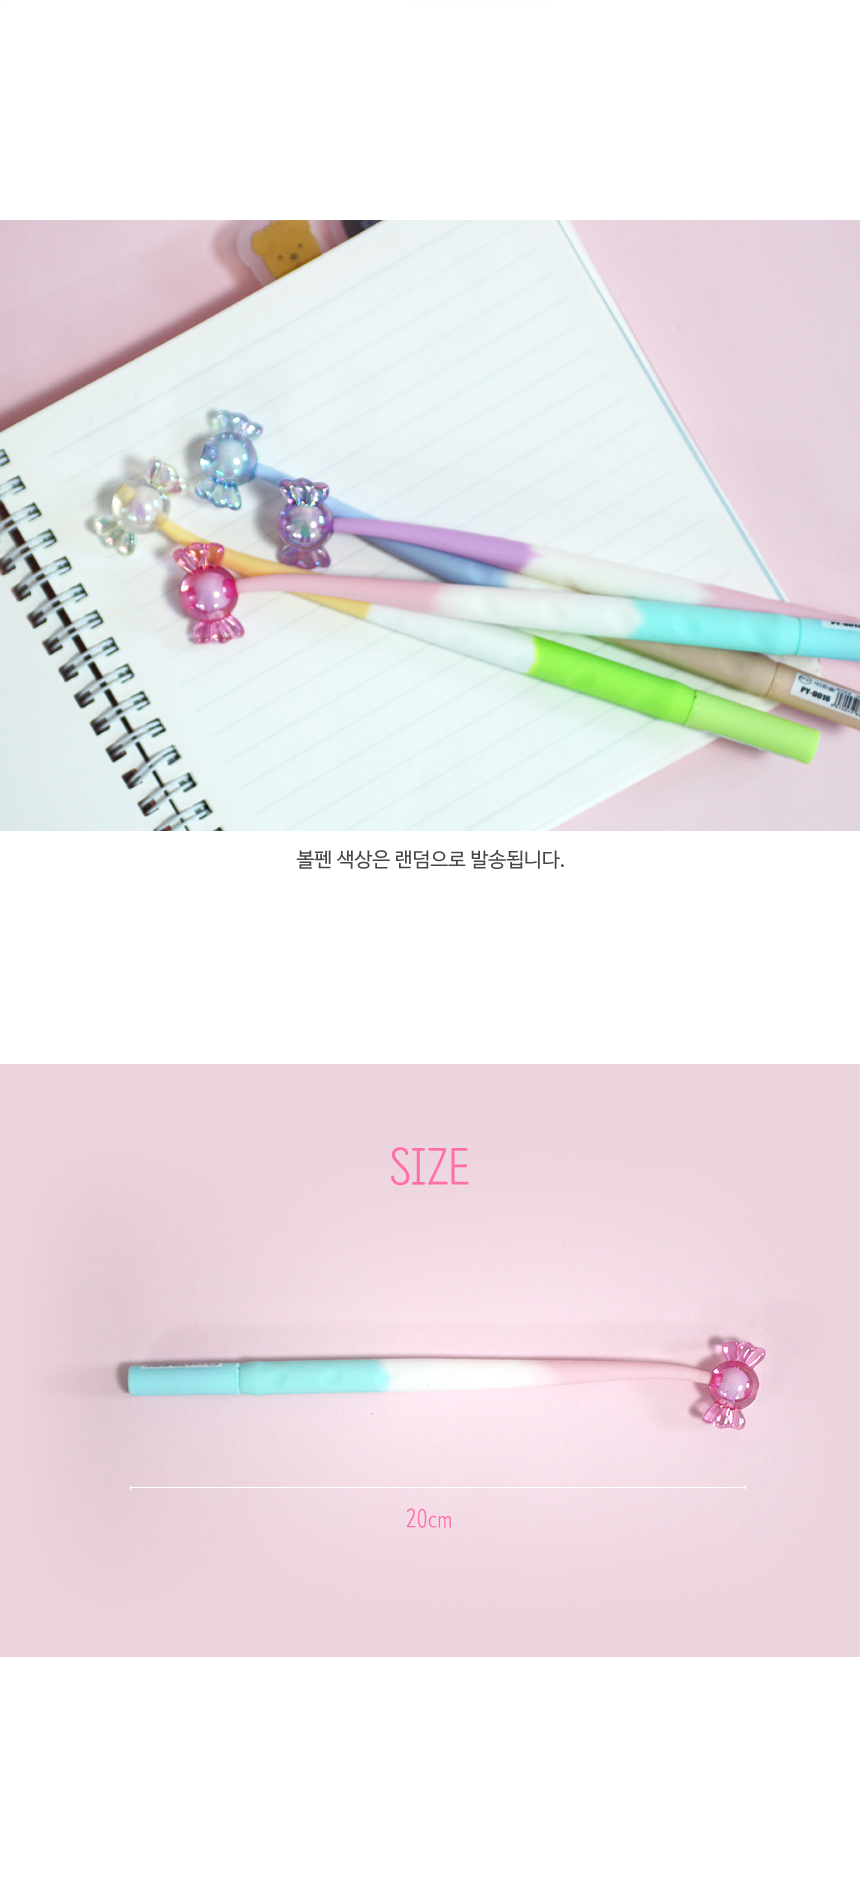 candyjelly_pen_03.jpg